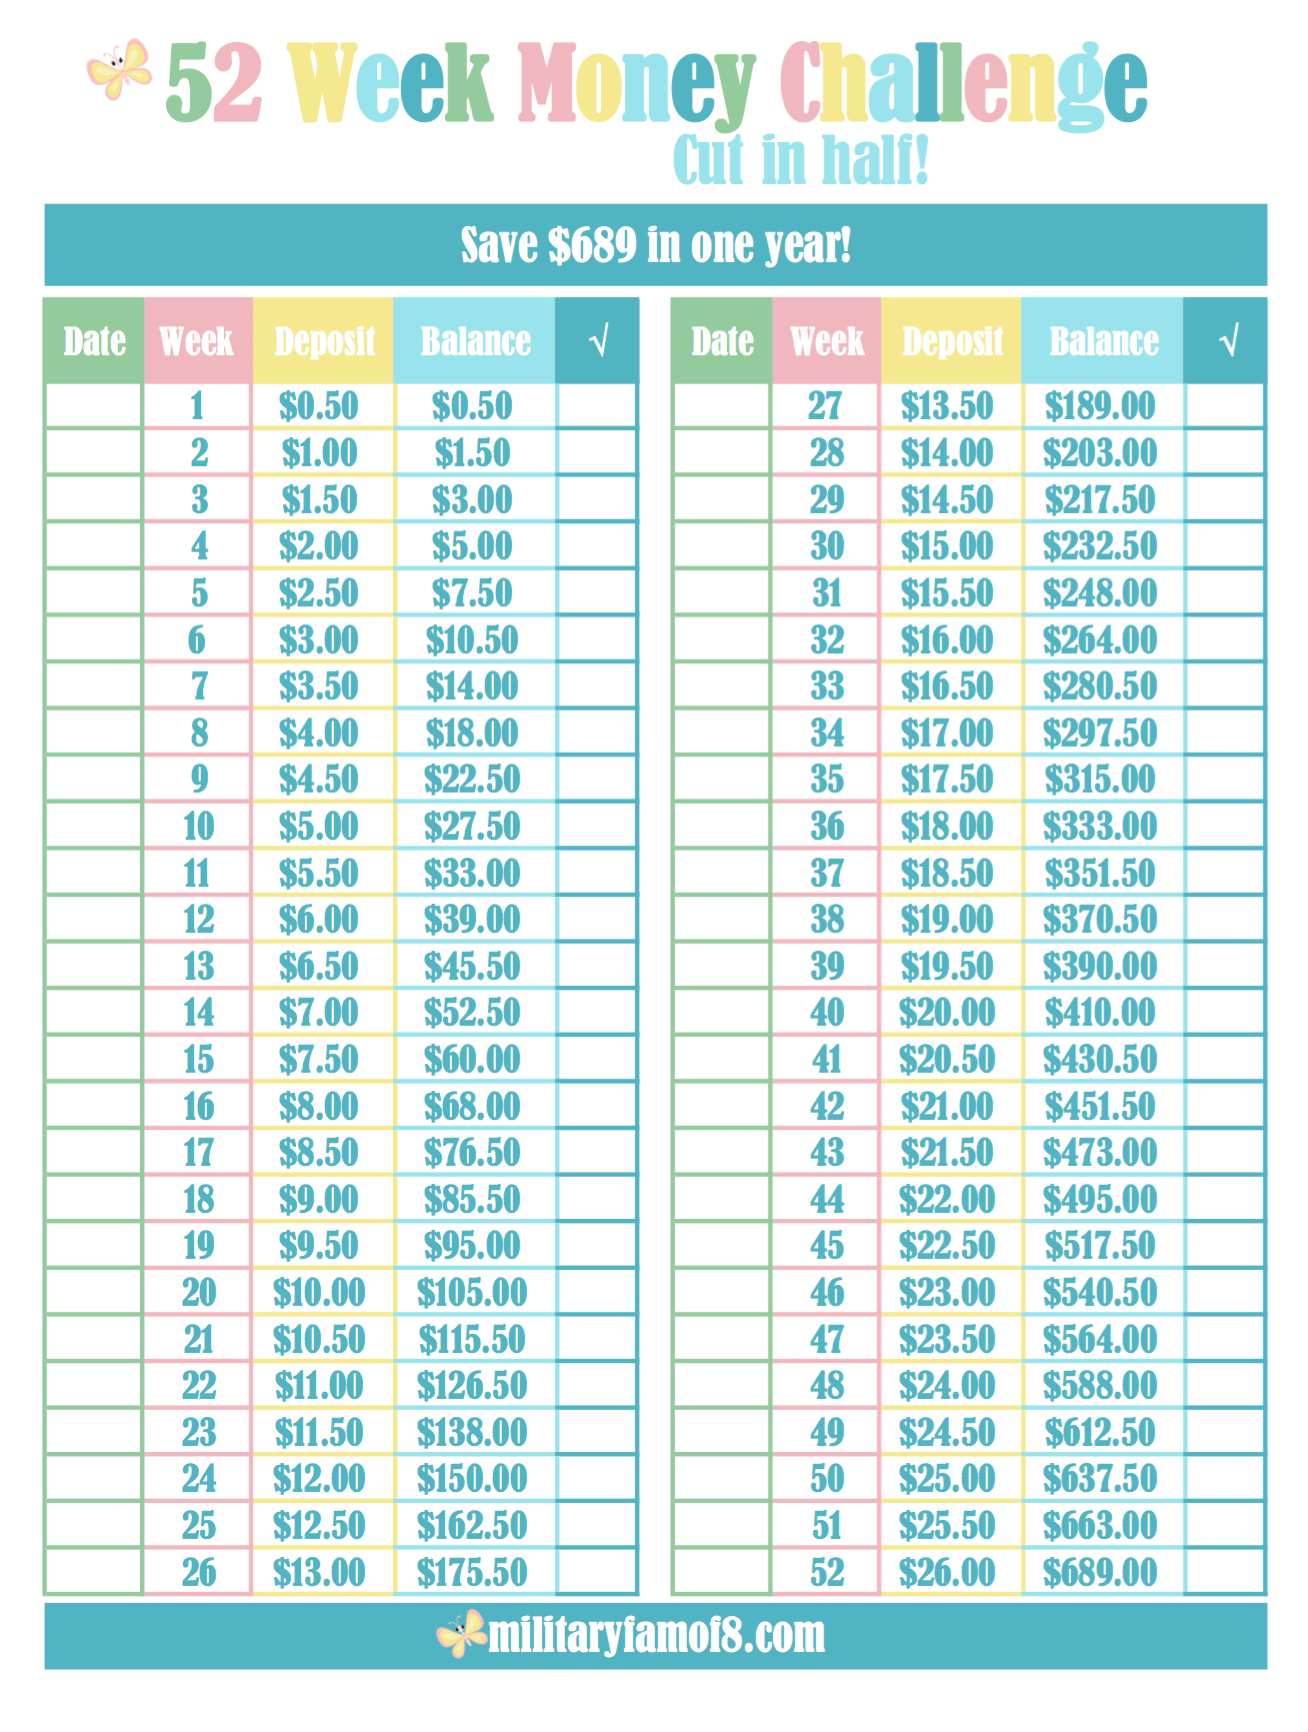 Different Versions Of The 52 Week Money Challenge